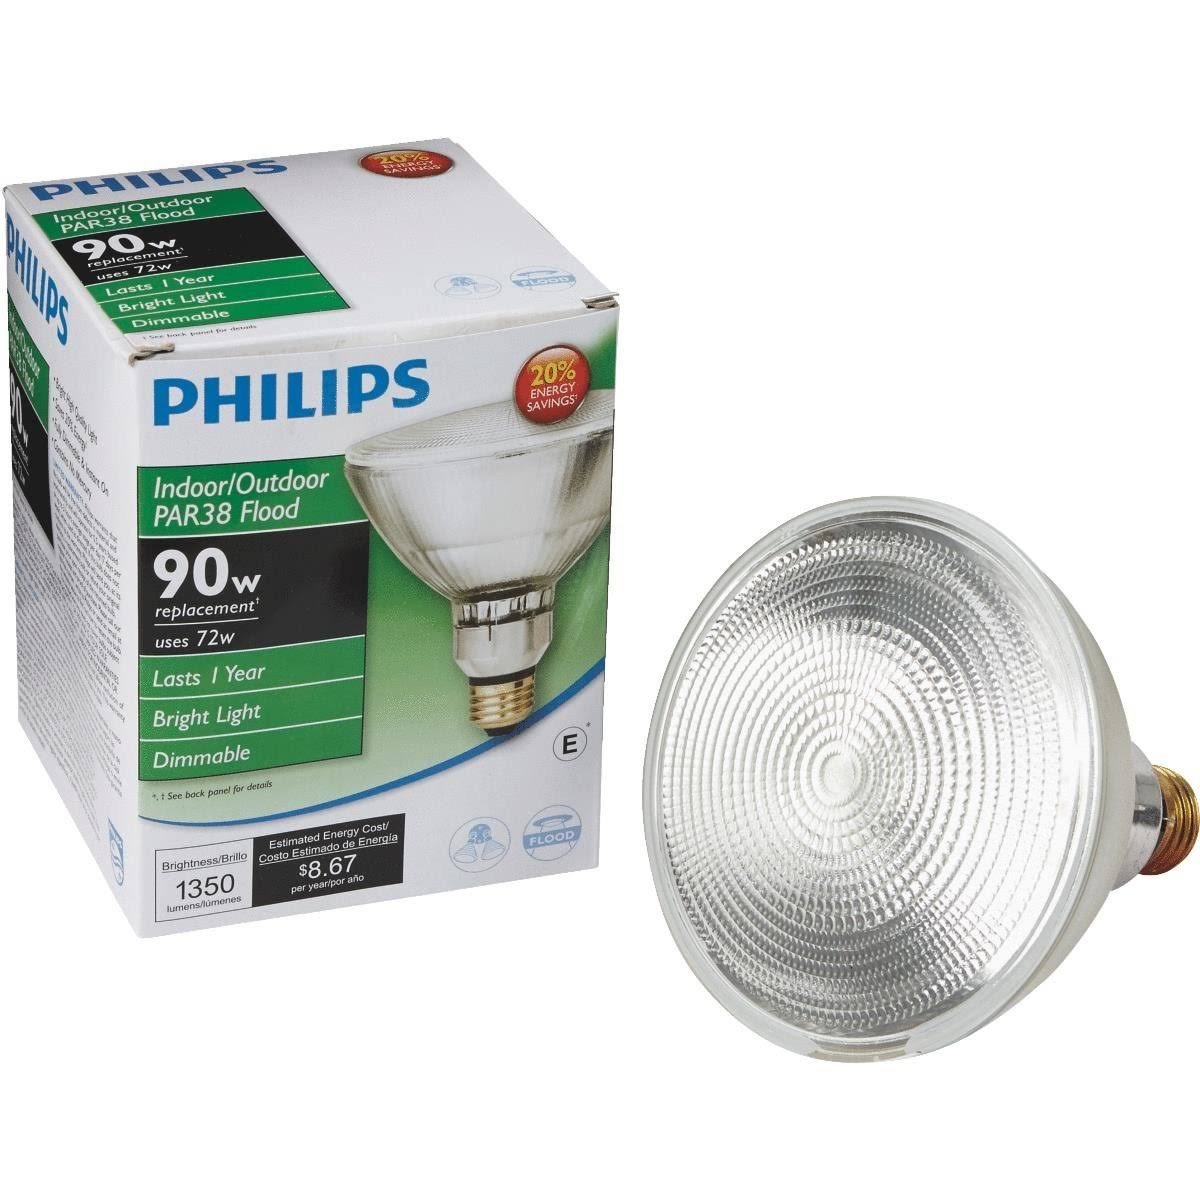 Philips 50 Watt Equivalent Halogen Dimmable Flood Light Bulb